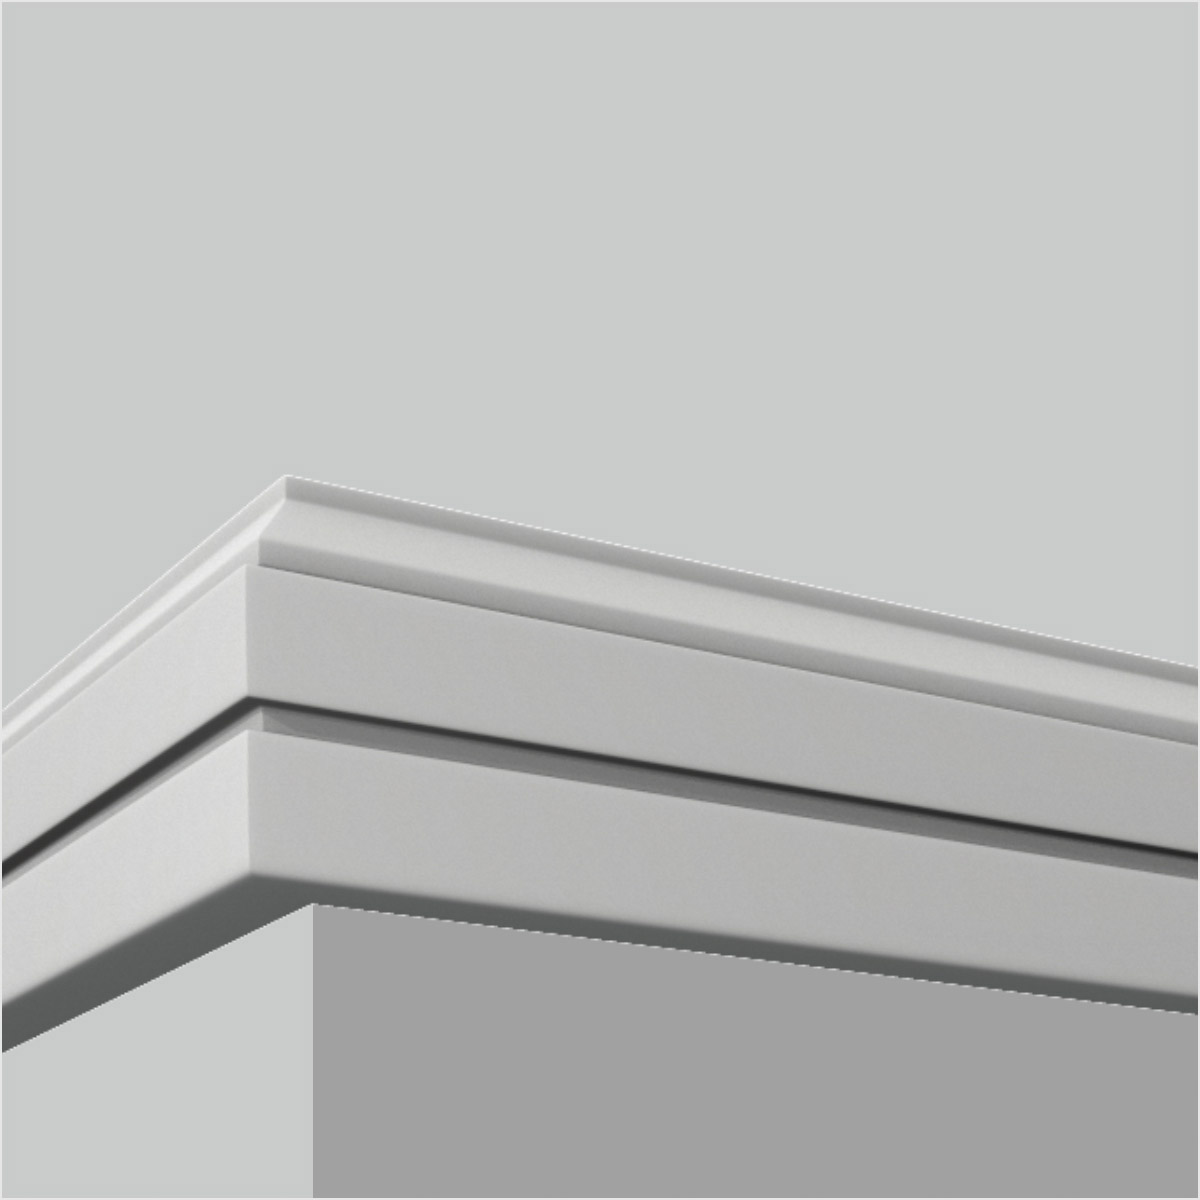 Polyurethane contemprorary baseboards and trim